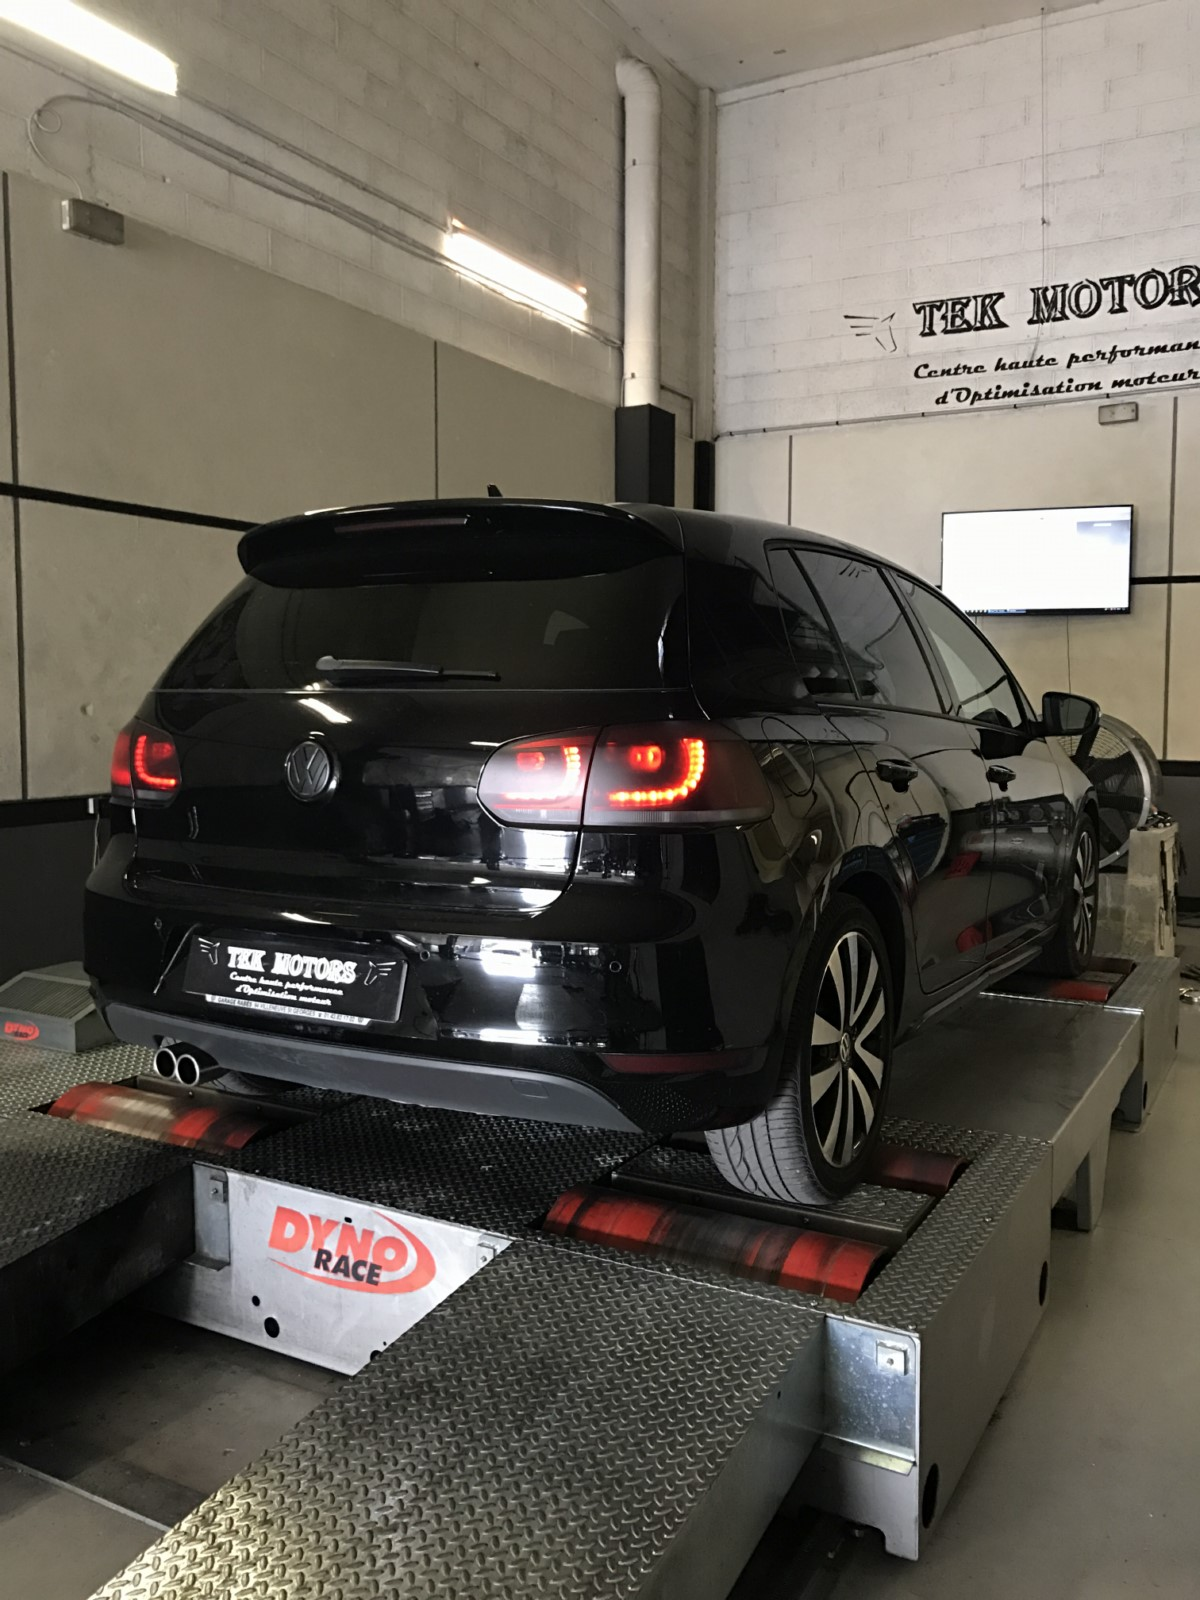 ligne compl te sur mesure inox melun dans le 77 reprogrammation sur mesure vw golf 6 gtd 2 0. Black Bedroom Furniture Sets. Home Design Ideas